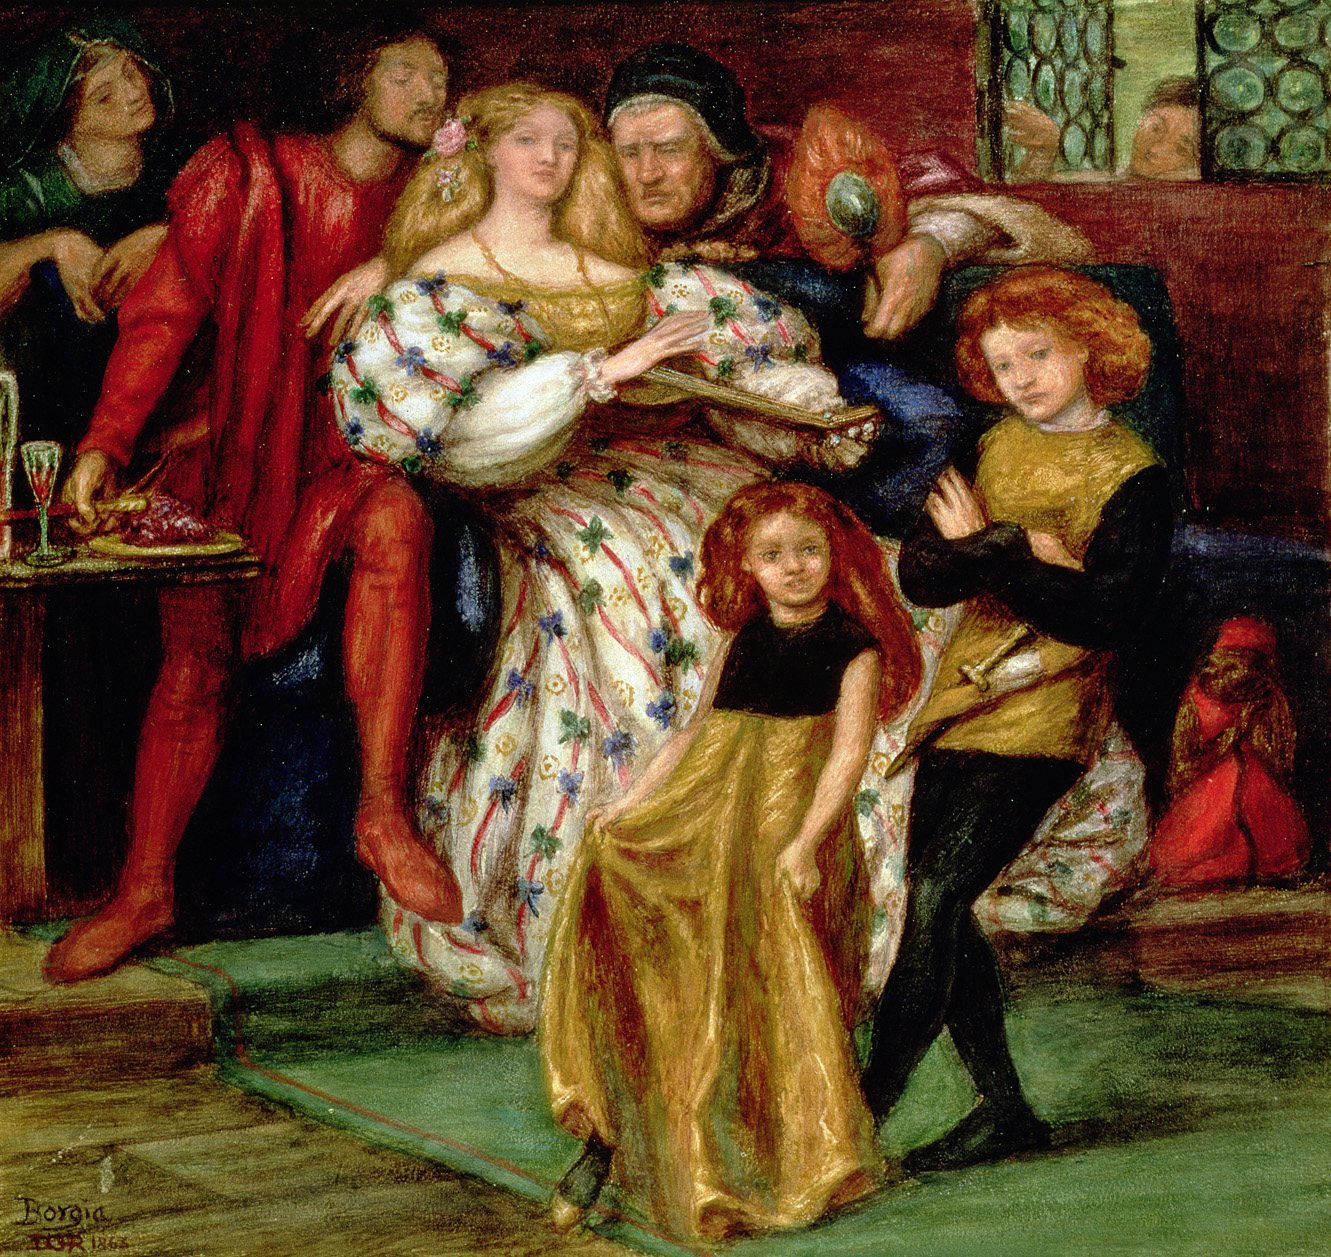 Borgia Family, by Dante Gabriel Rossetti, 1863. Tullie House Museum and Art Gallery, Carlisle, United Kingdom.